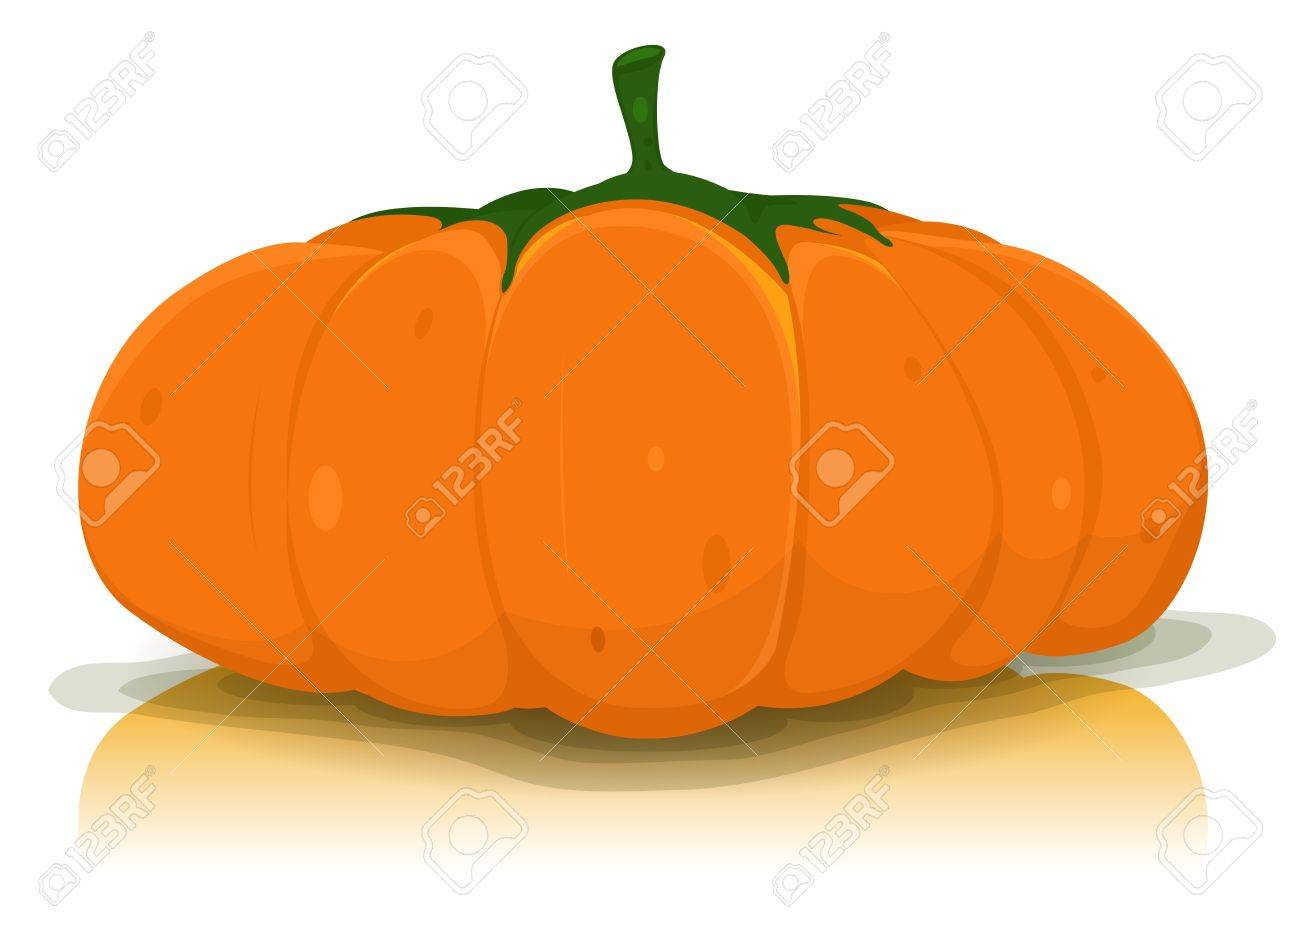 Illustration of a big orange autumn pumpkin vegetable isolated on white background, for halloween or thanksgiving holidays Stock Vector - 15436276